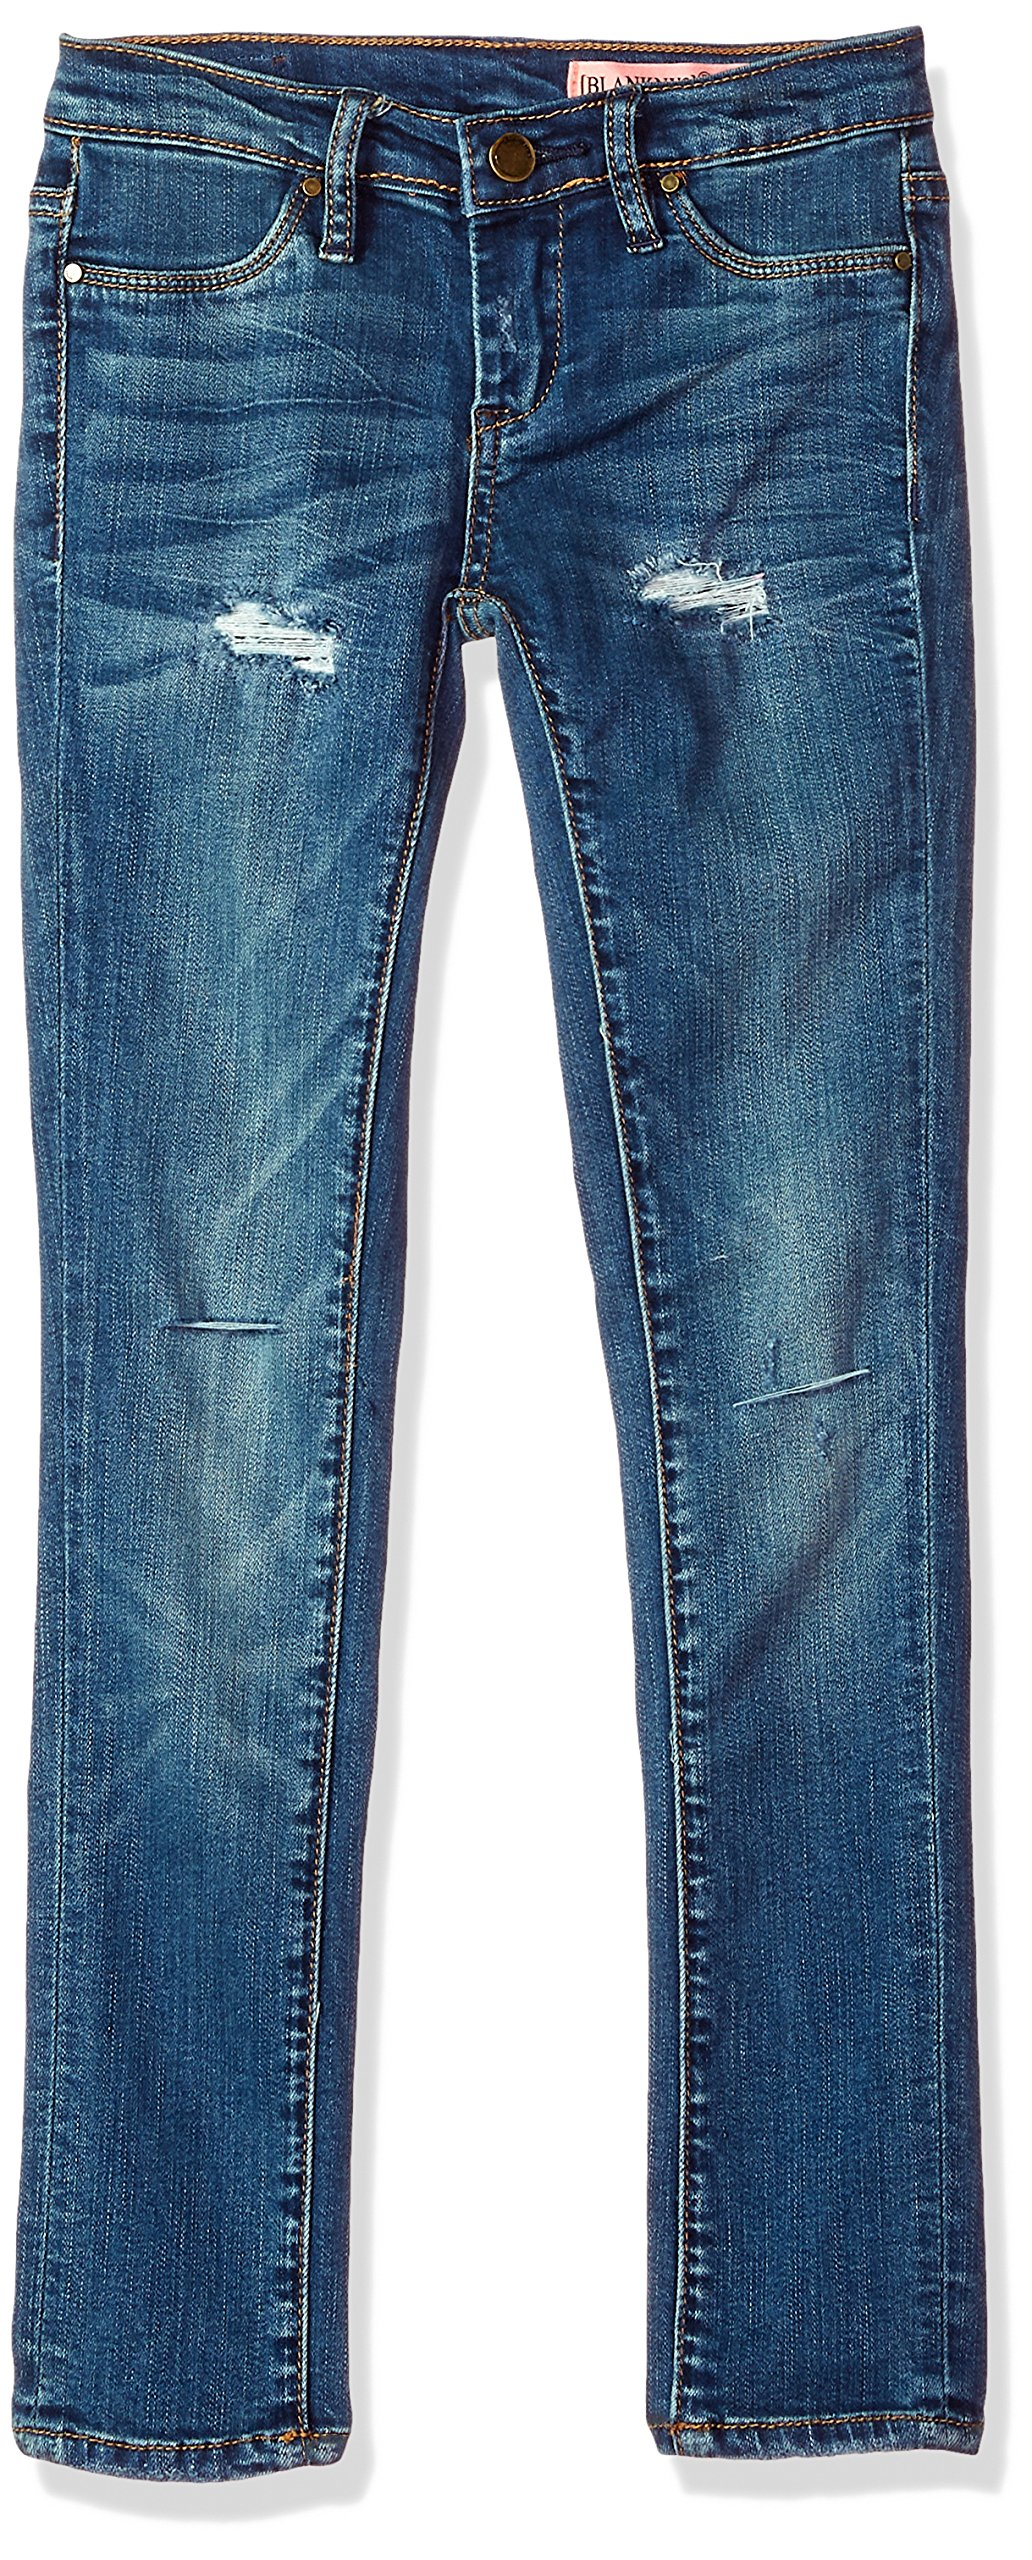 [BLANKNYC] Big Girl's Distressed Super Skinny Pants, no time for DAT, 12 by [BLANKNYC] (Image #1)